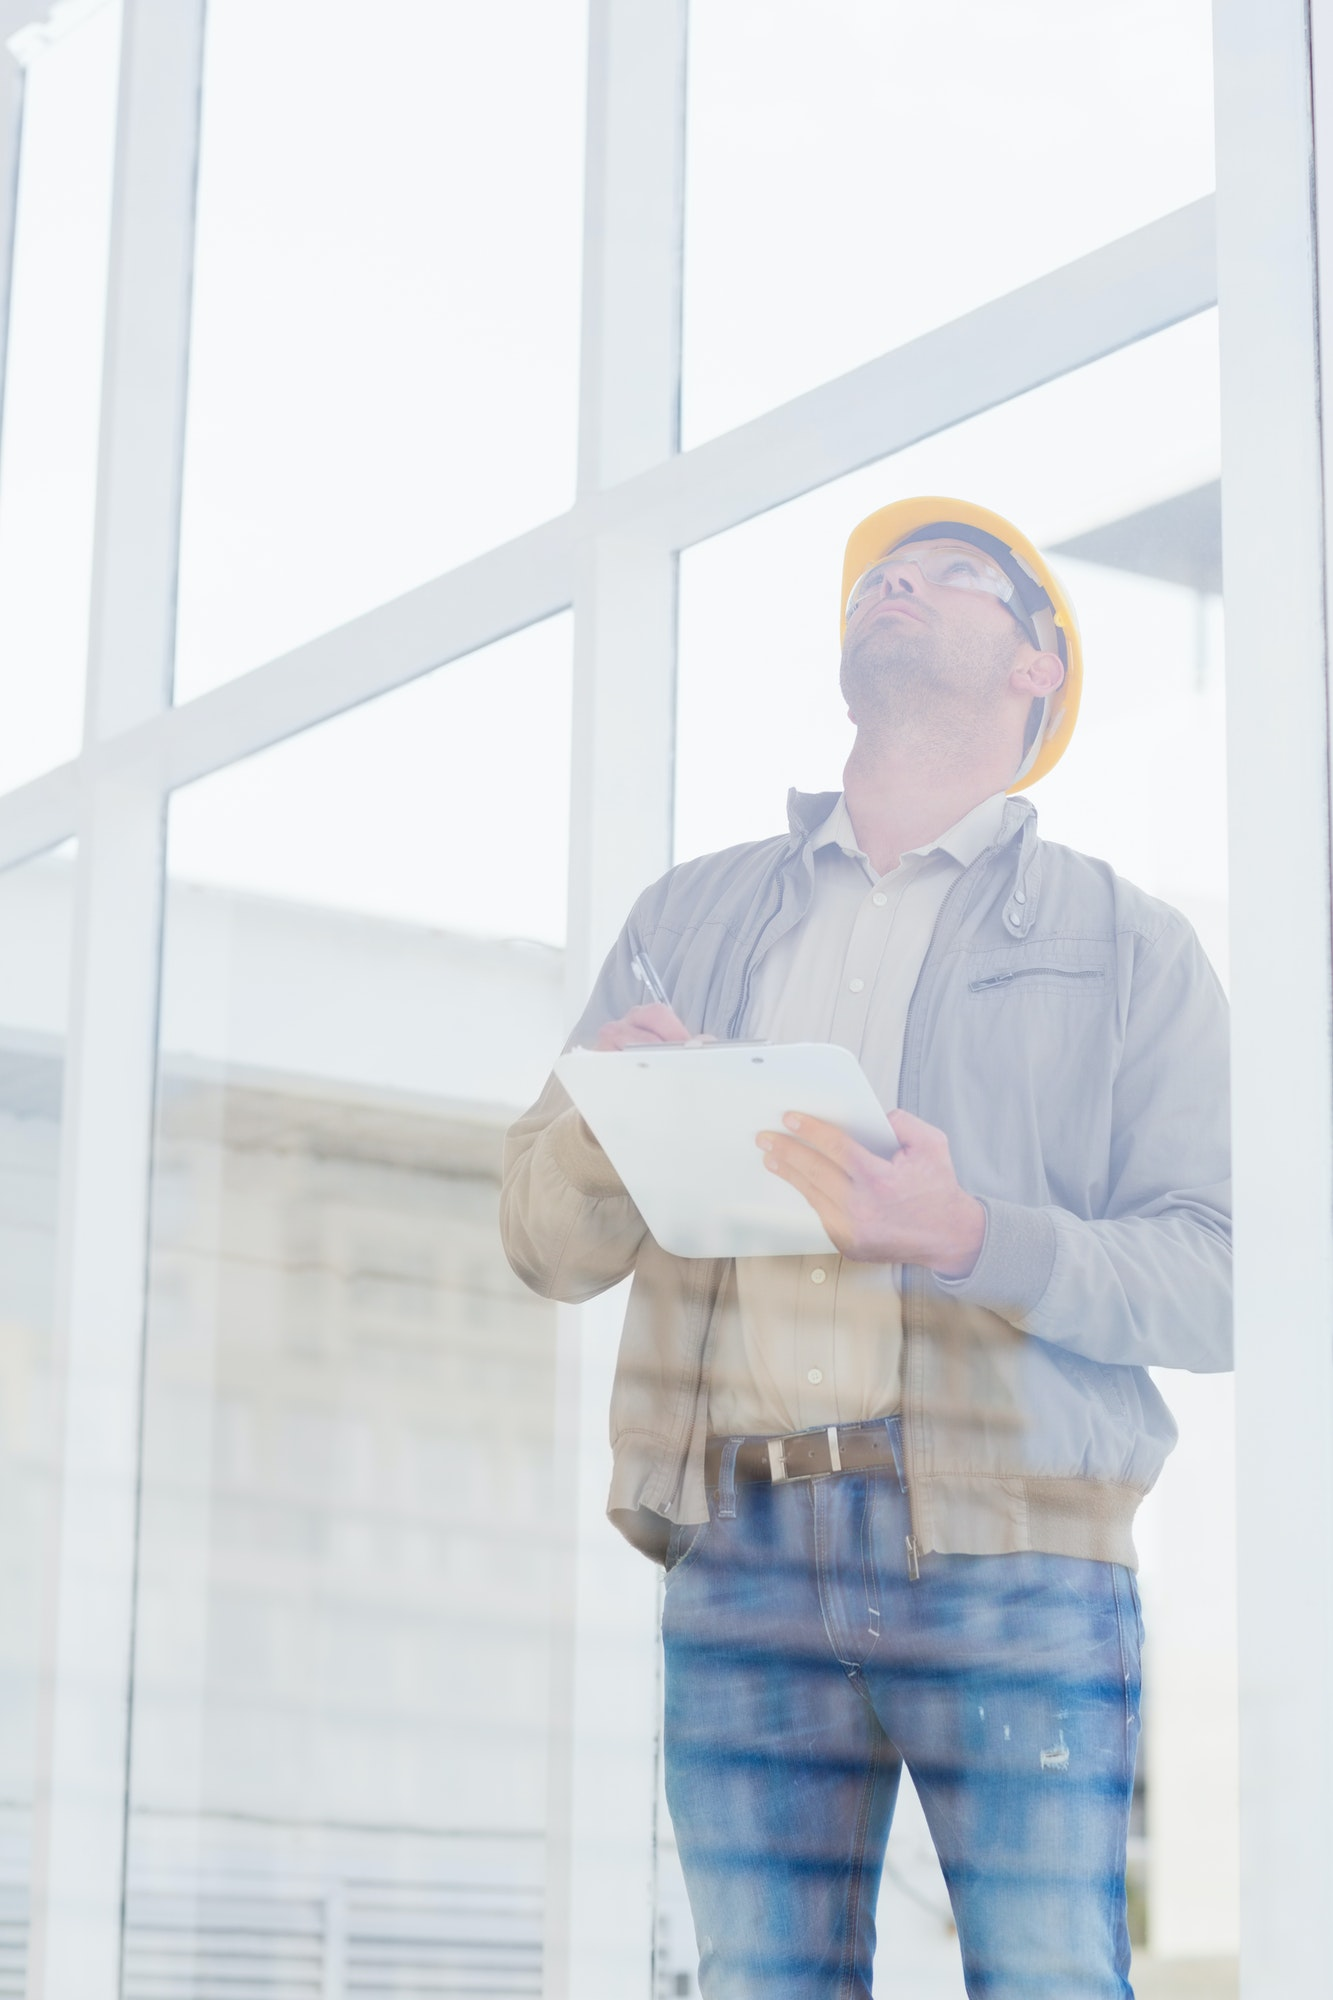 Male supervisor looking up while writing on clipboard in office